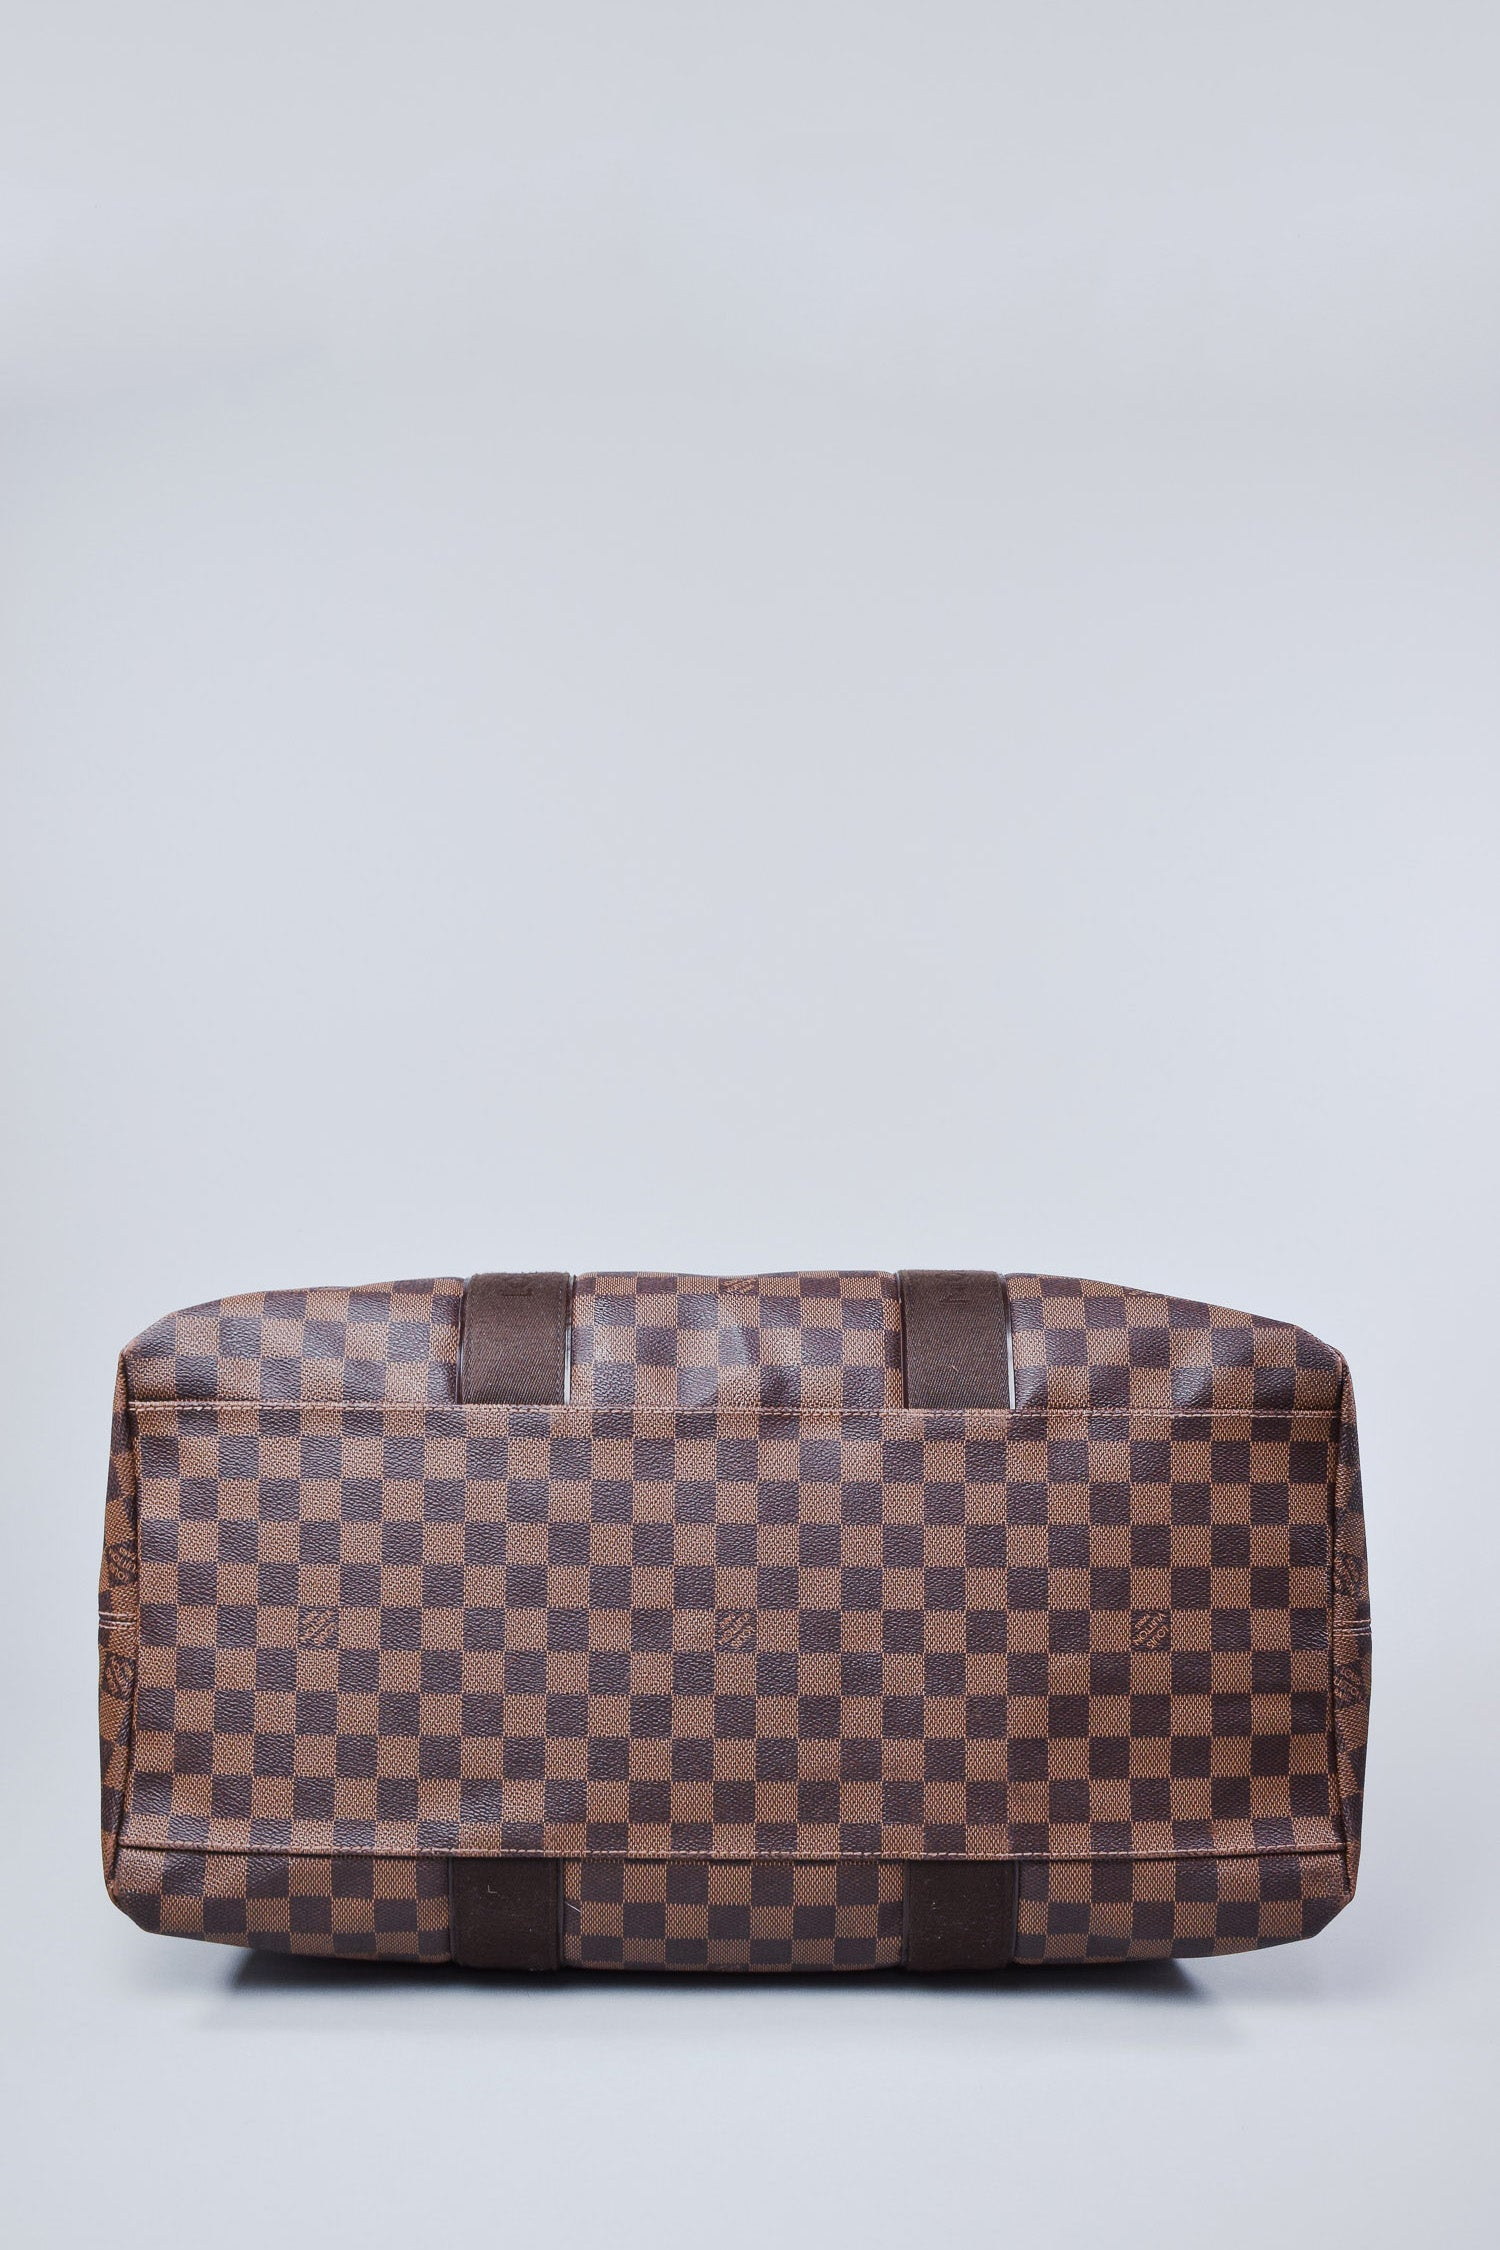 Louis Vuitton Large Monogram Duffle Bag